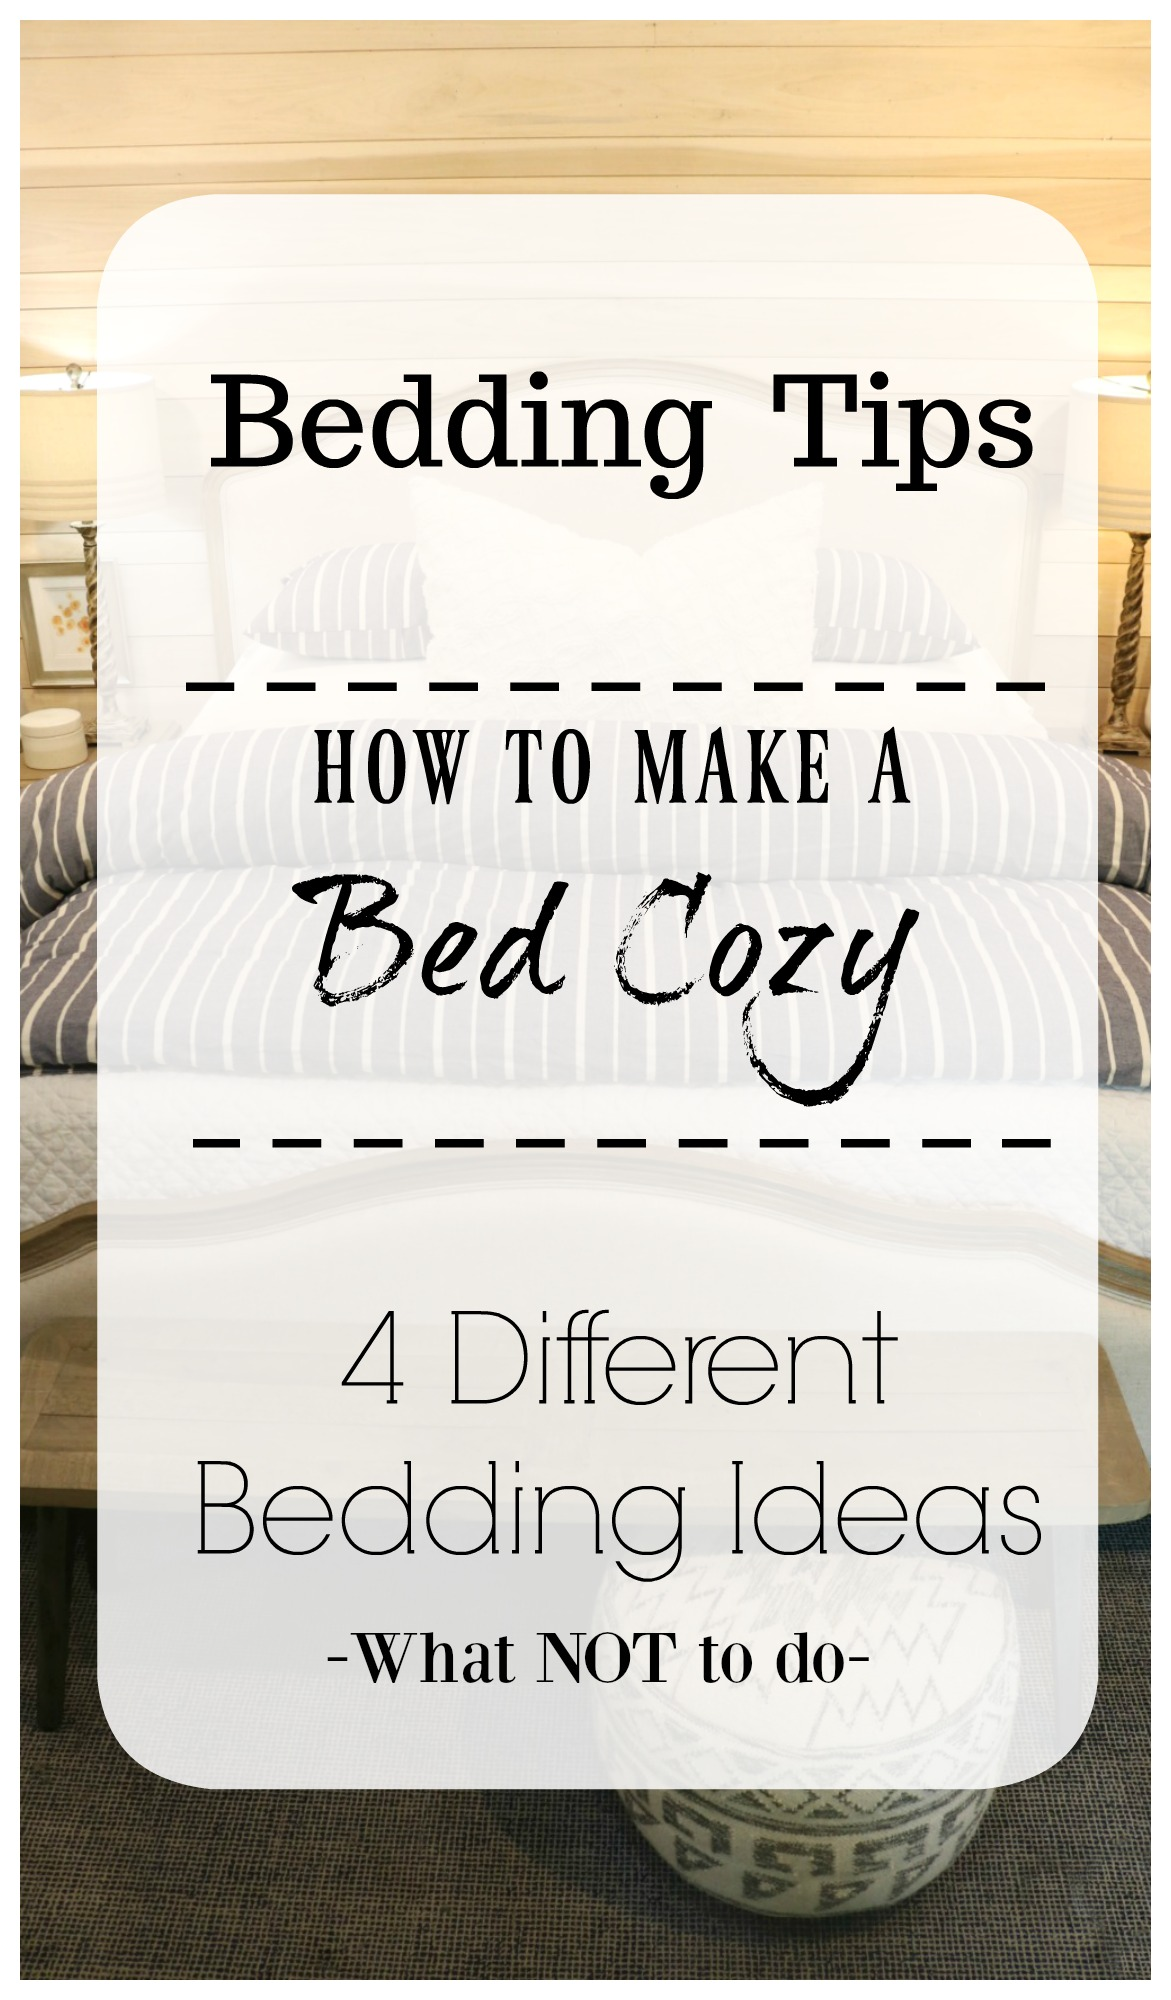 Bedding Ideas- How to make a Bed Cozy- King Bed- Master Bedroom